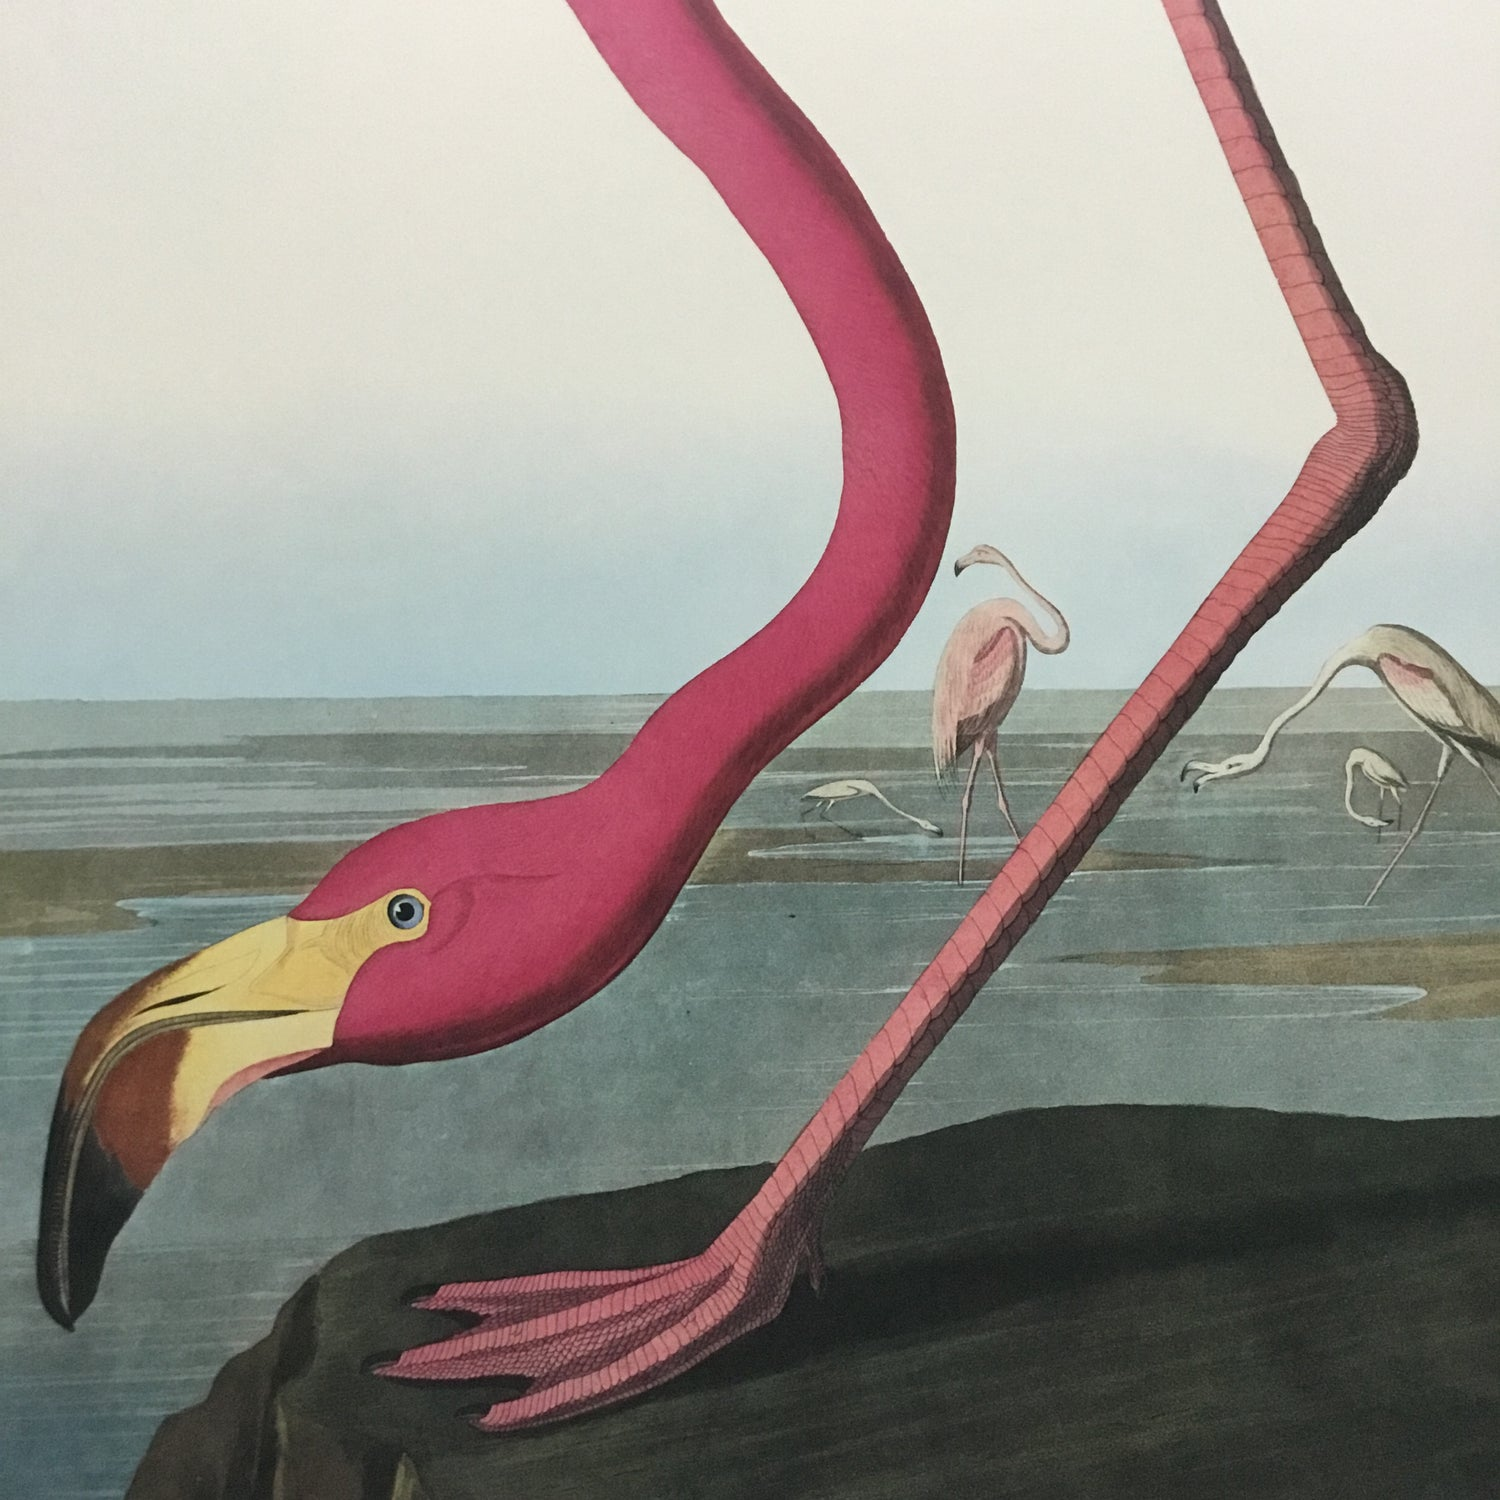 American Flamingo, plate 431, Princeton Audubon Double Elephant Edition of 1500 - Direct camera lithograph. 26 1/4 x 39 1/4.